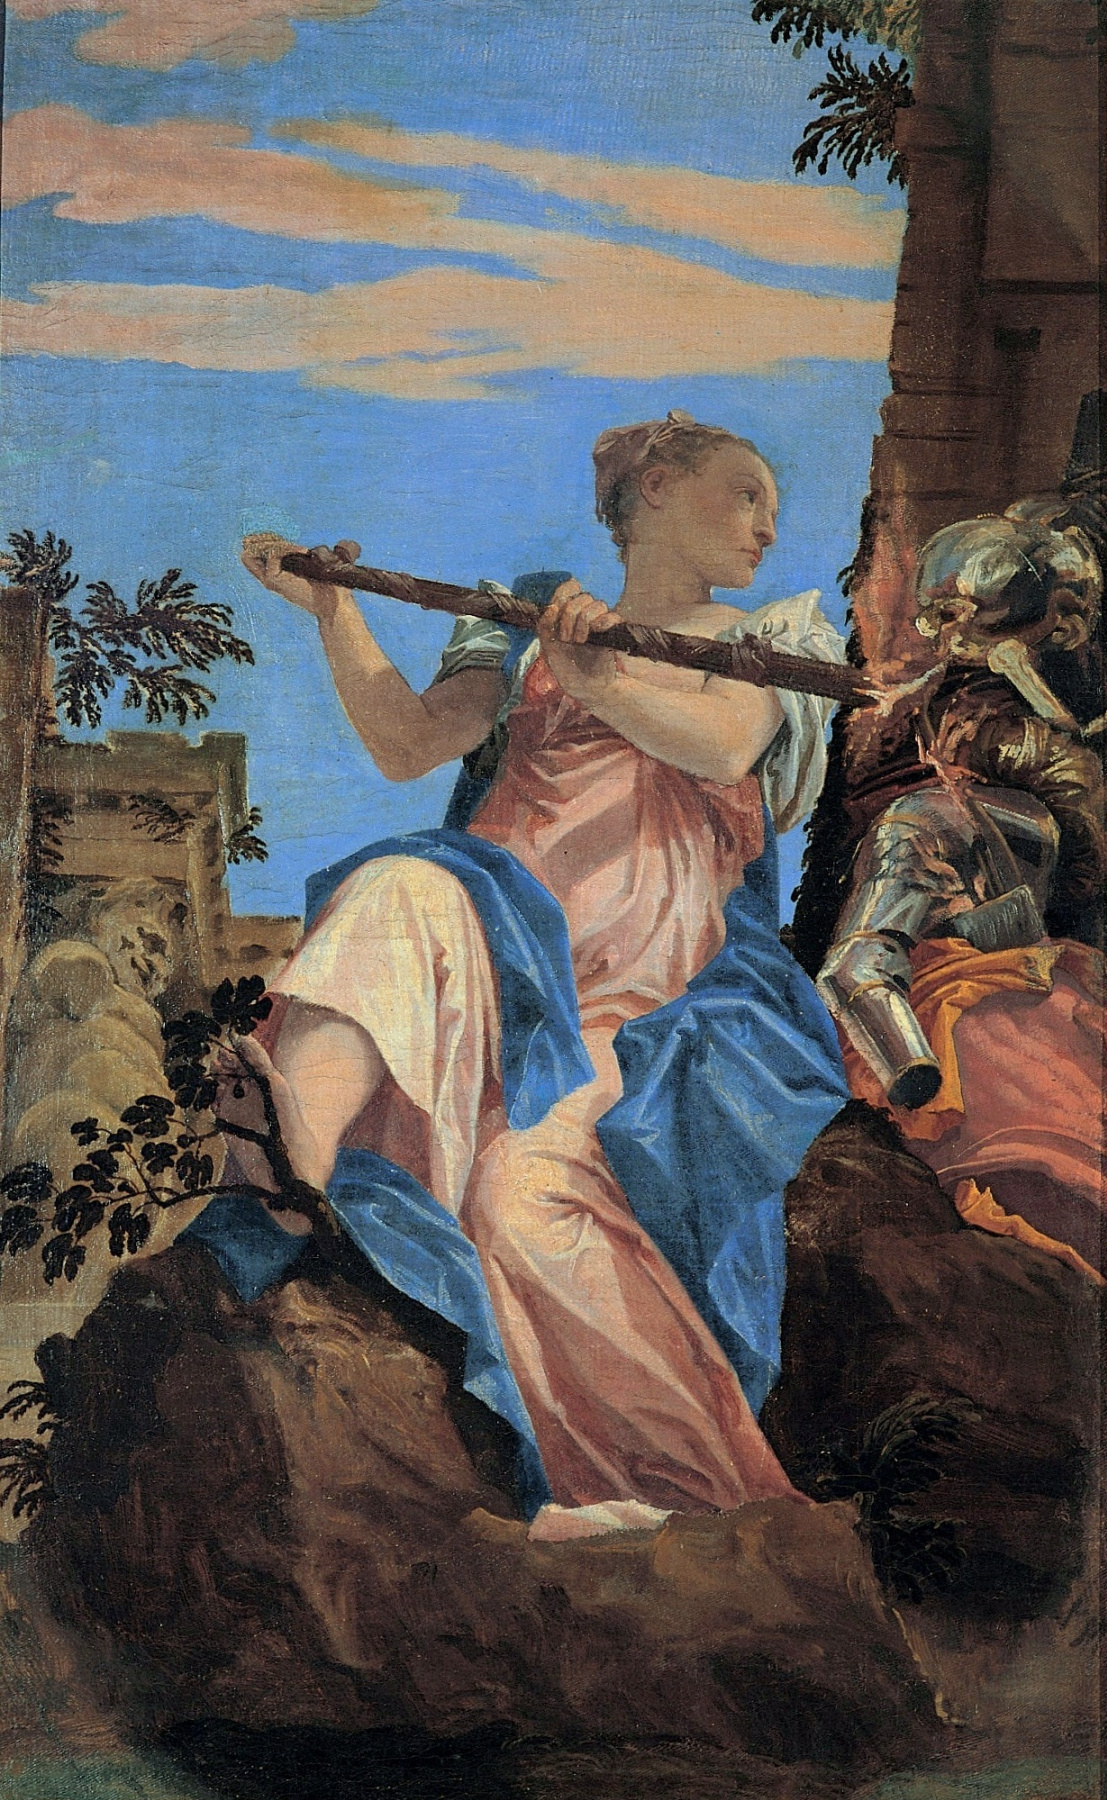 Paolo Veronese. Allegory of the World